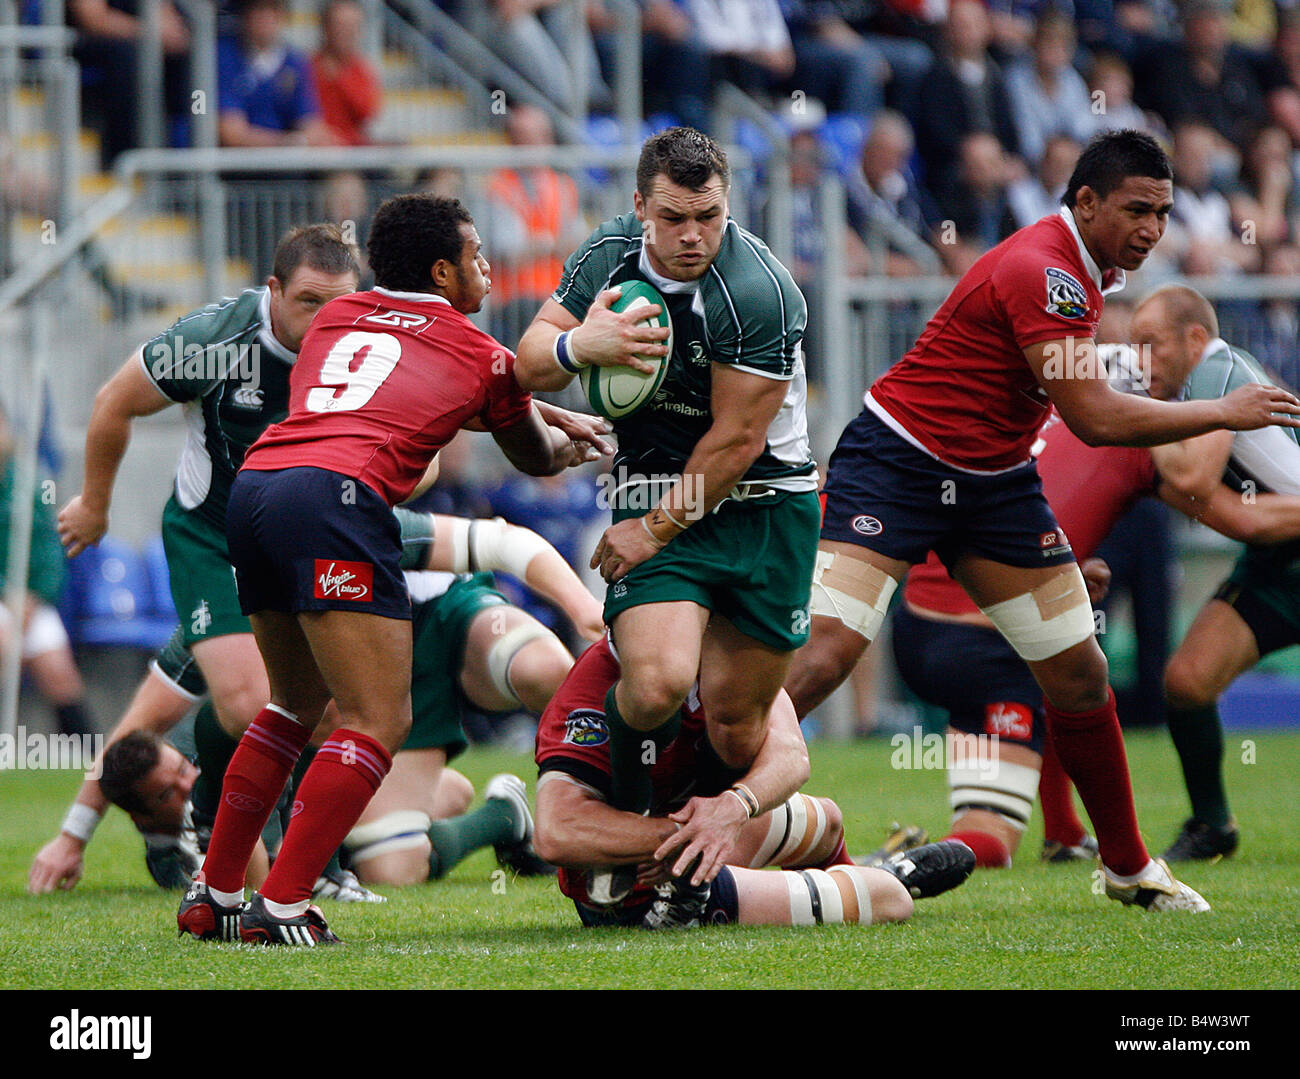 Cian Healy - Leinster Rugby (Irish Team) - Stock Image